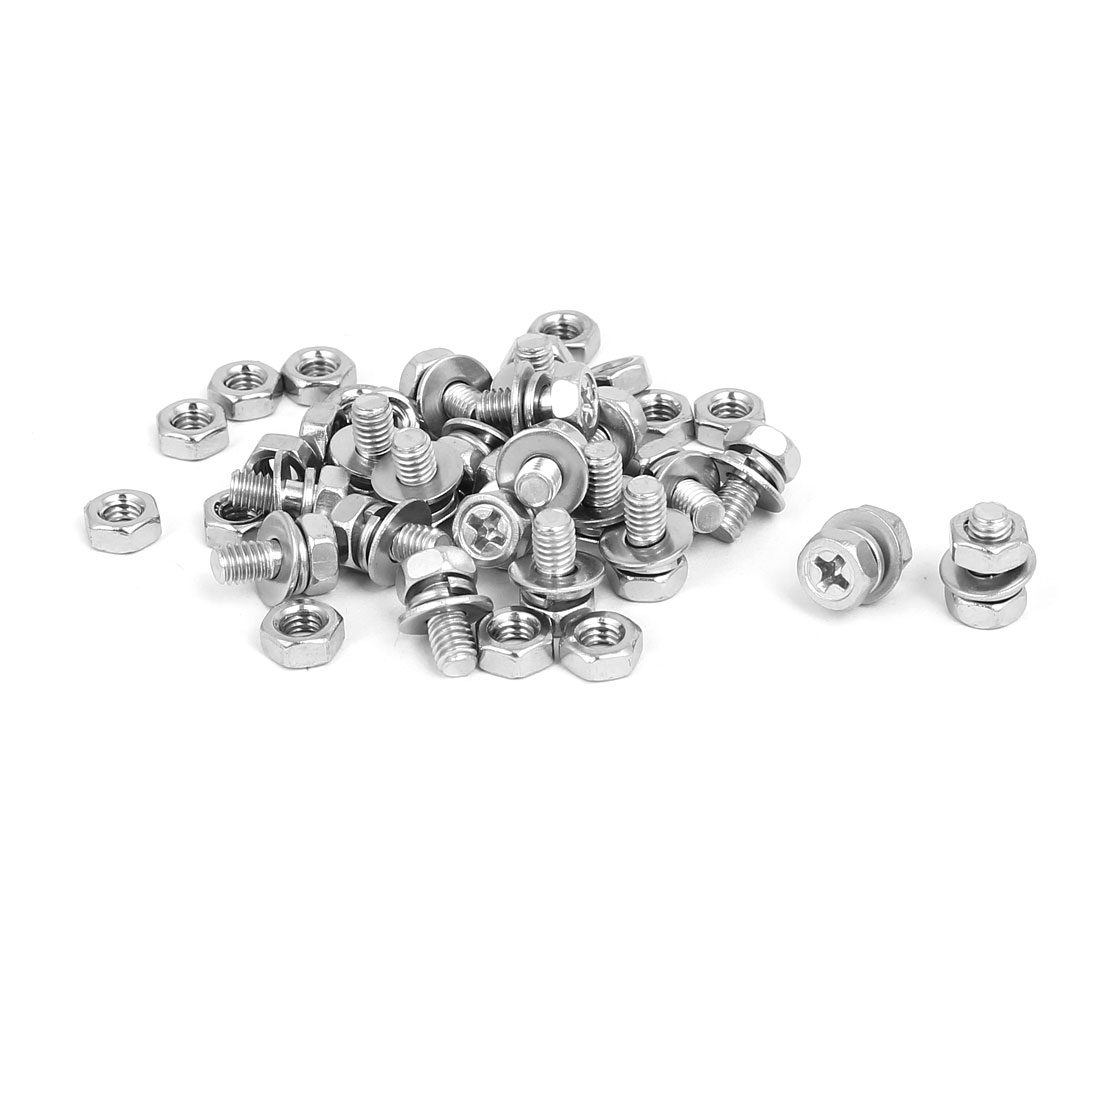 M4 x 8mm 304 Stainless Steel Phillips Hex Head Bolts Nuts w Washers 20 Sets